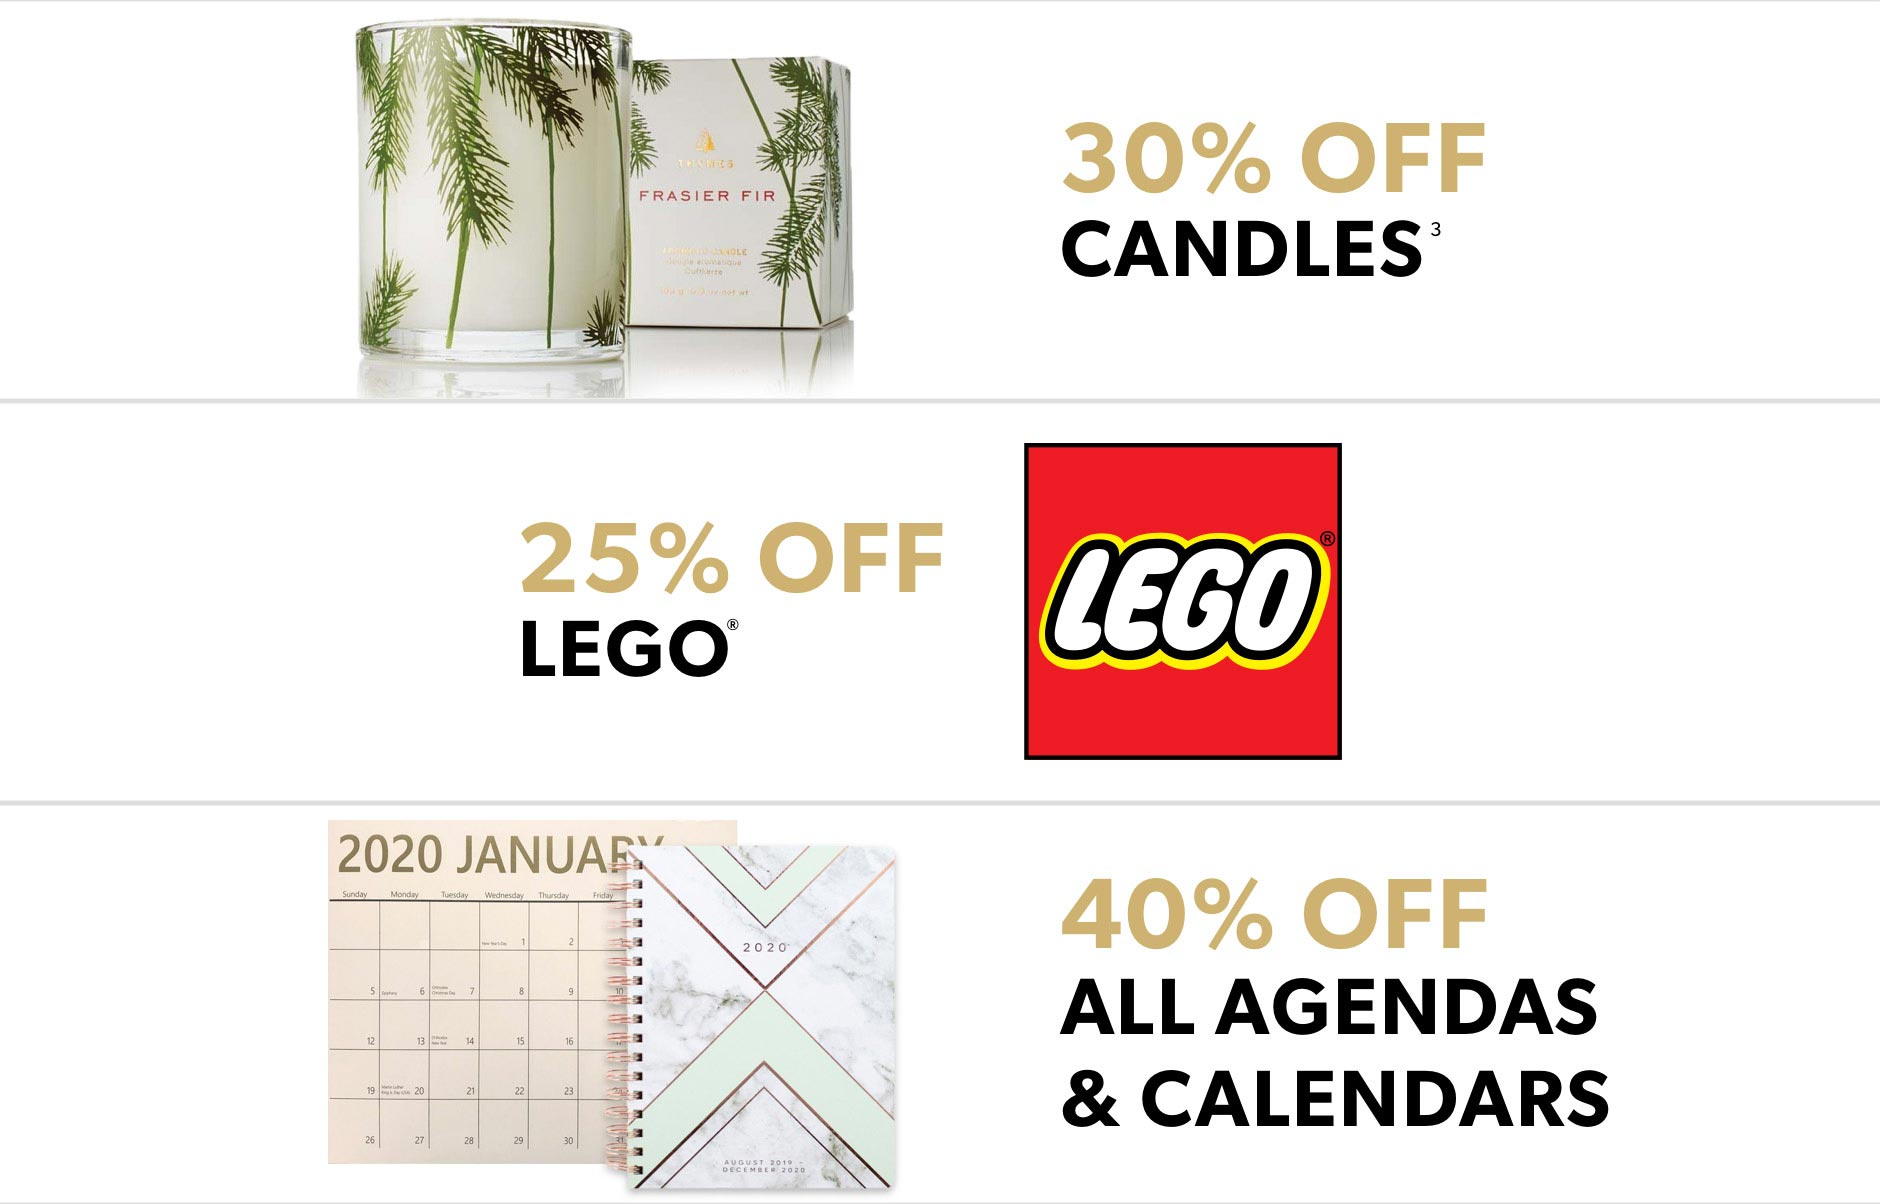 Black Friday In-Store Only: 30% off candles, 25% off LEGO, 40% off all agendas & calendars